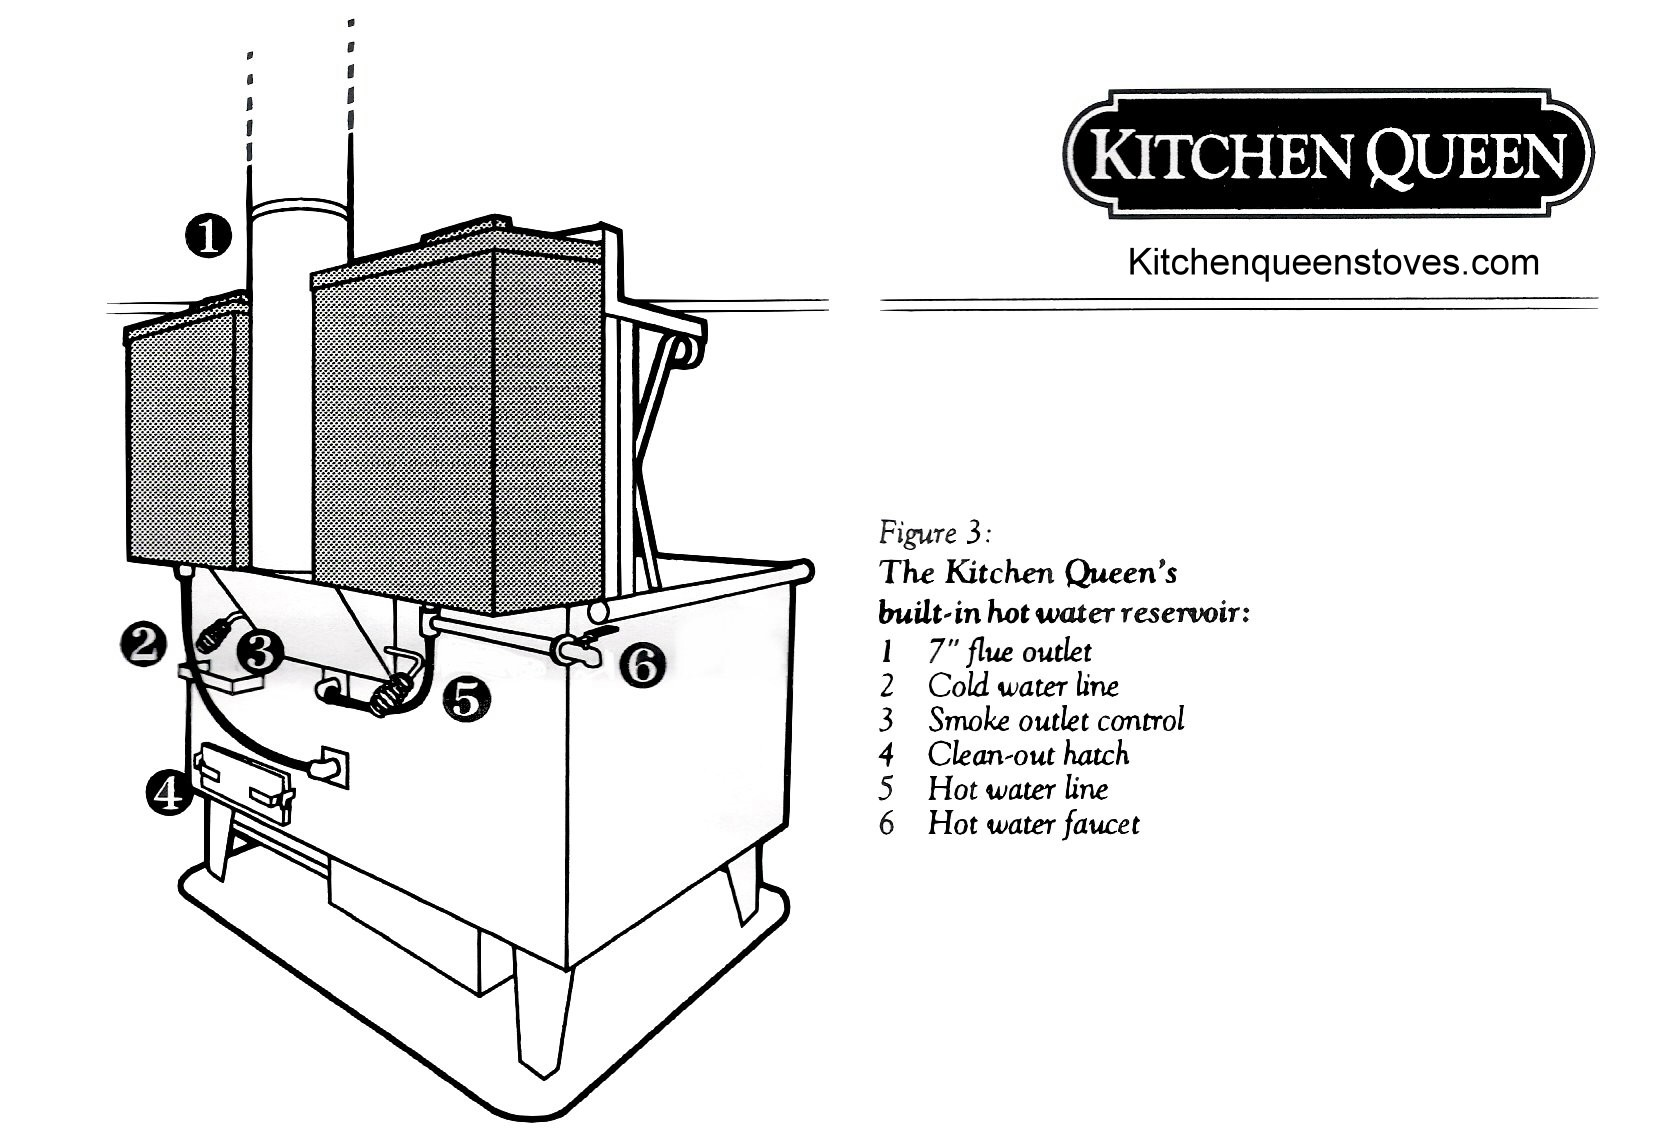 hight resolution of kitchen queen wood cook stove for heating your home and cooking